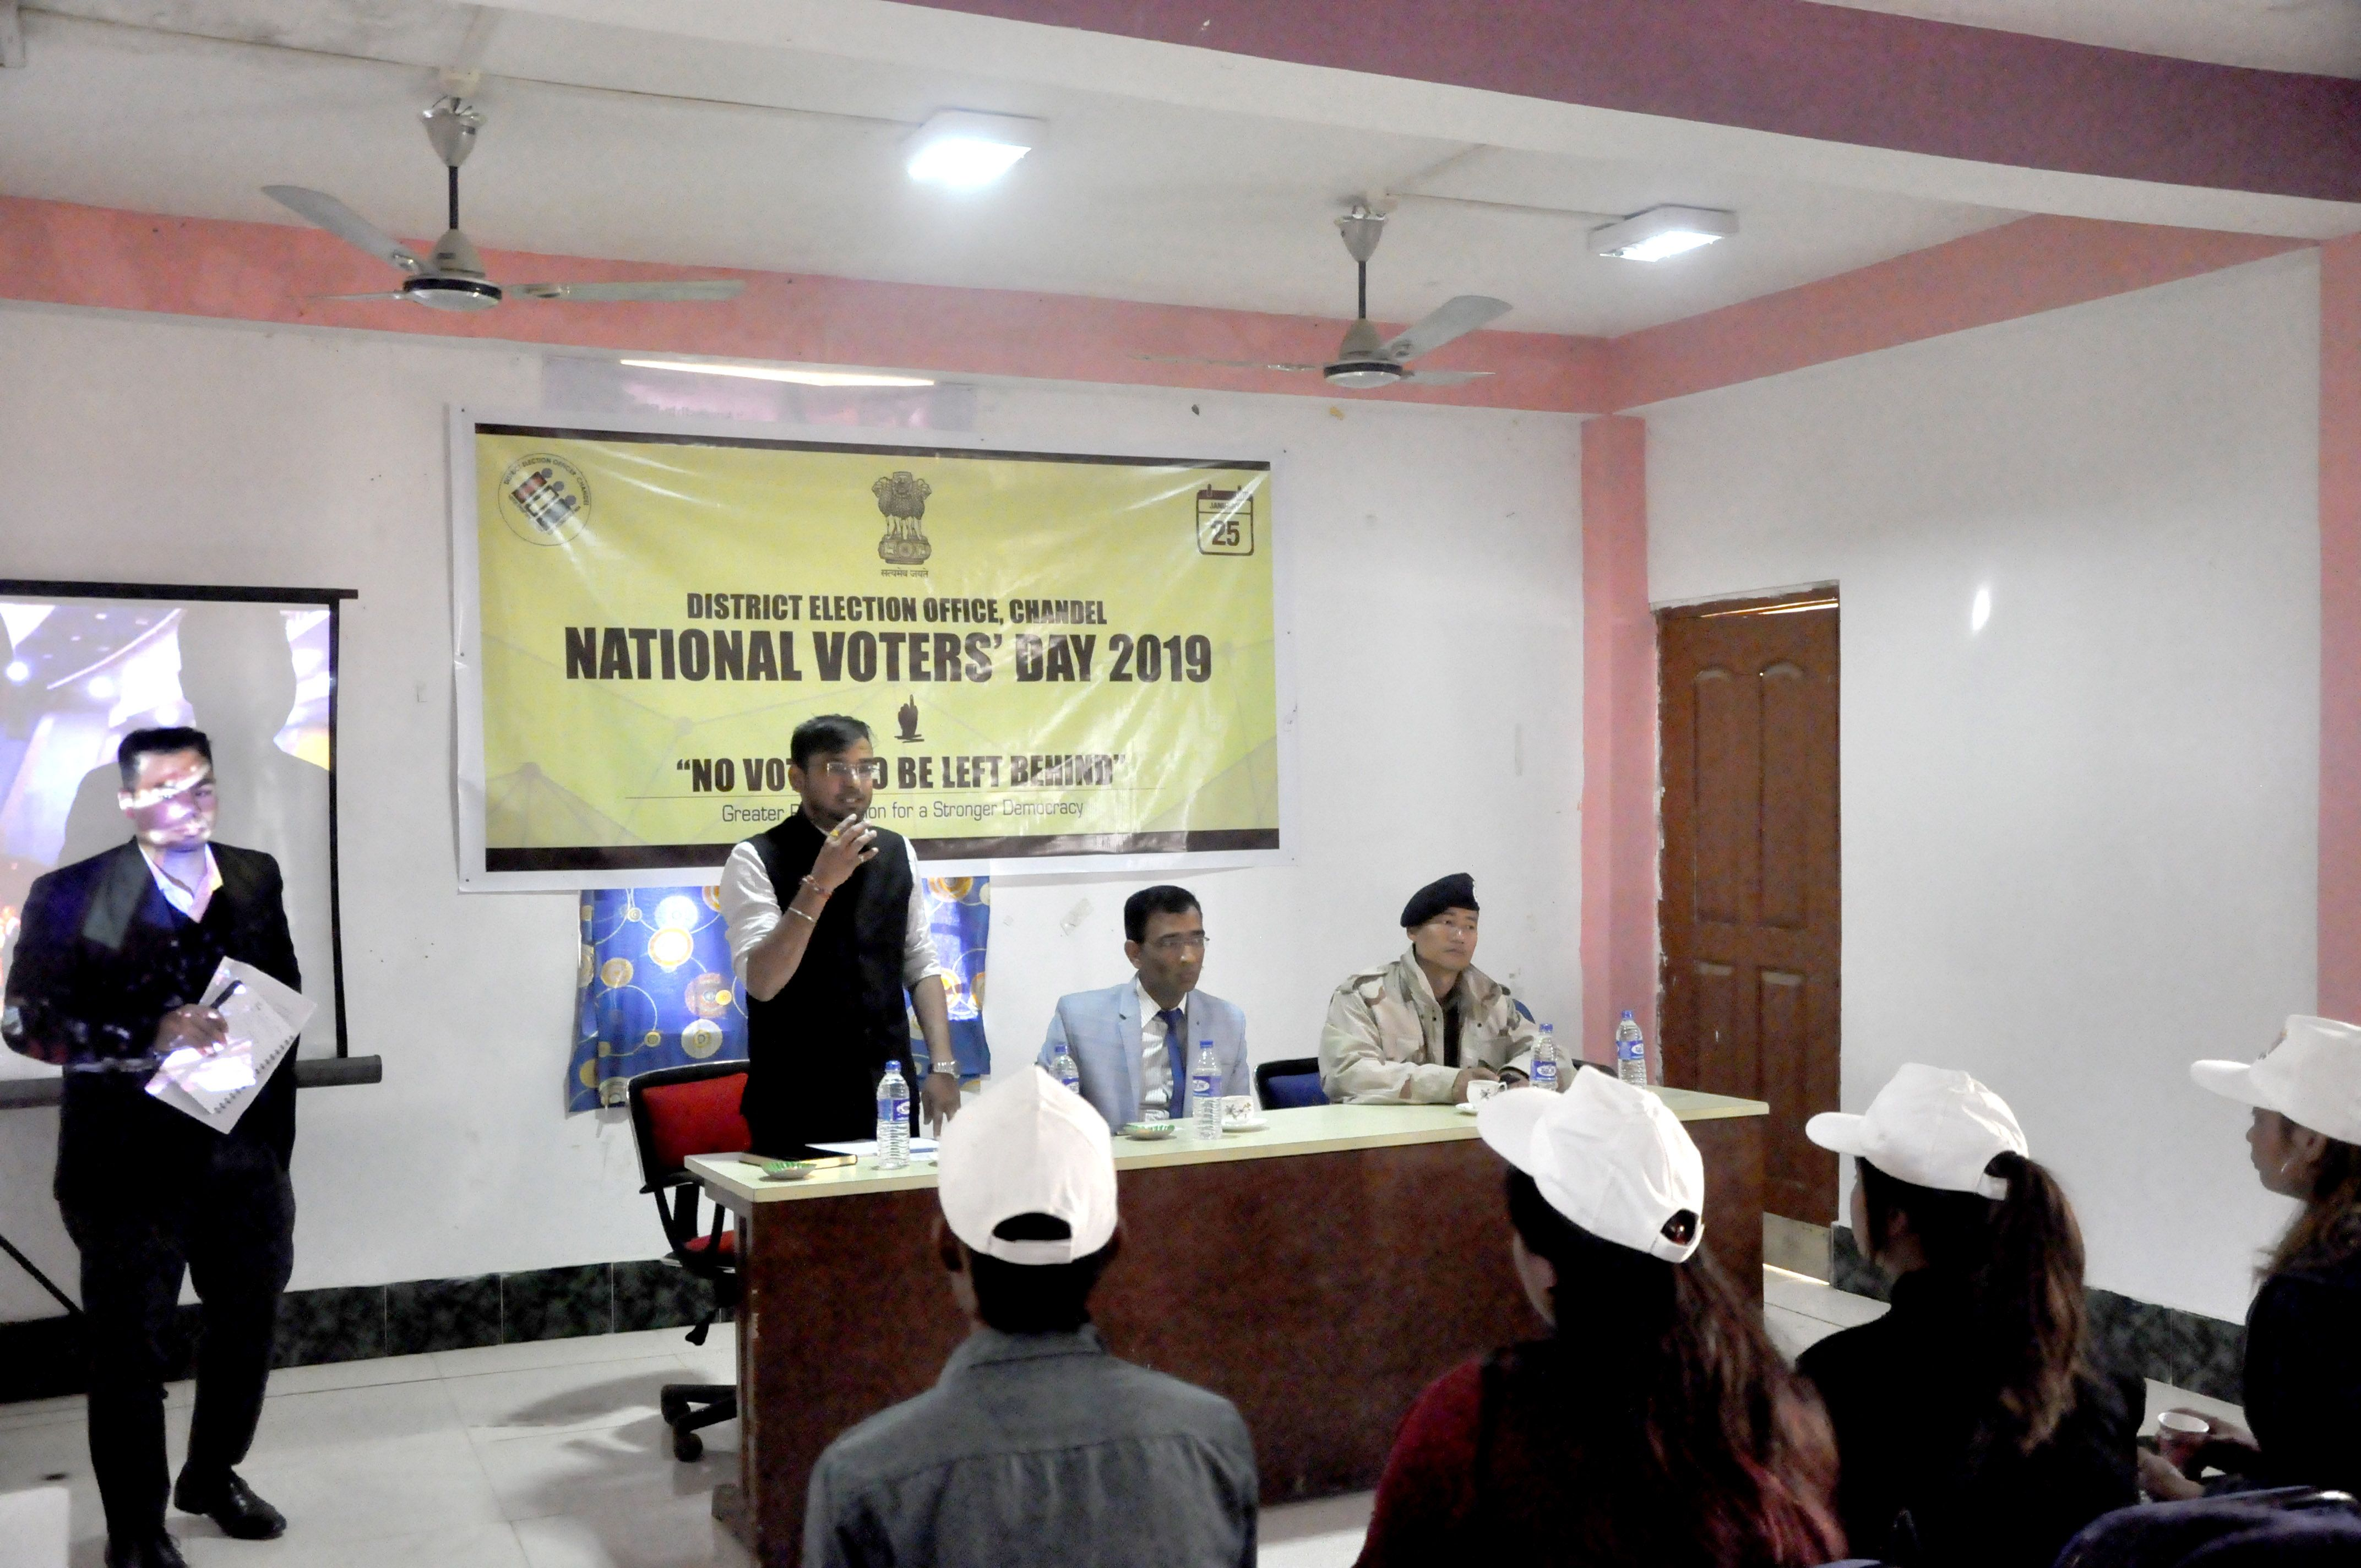 National Voters Day 2019 @ CHANDEL DISTRICT 25 January